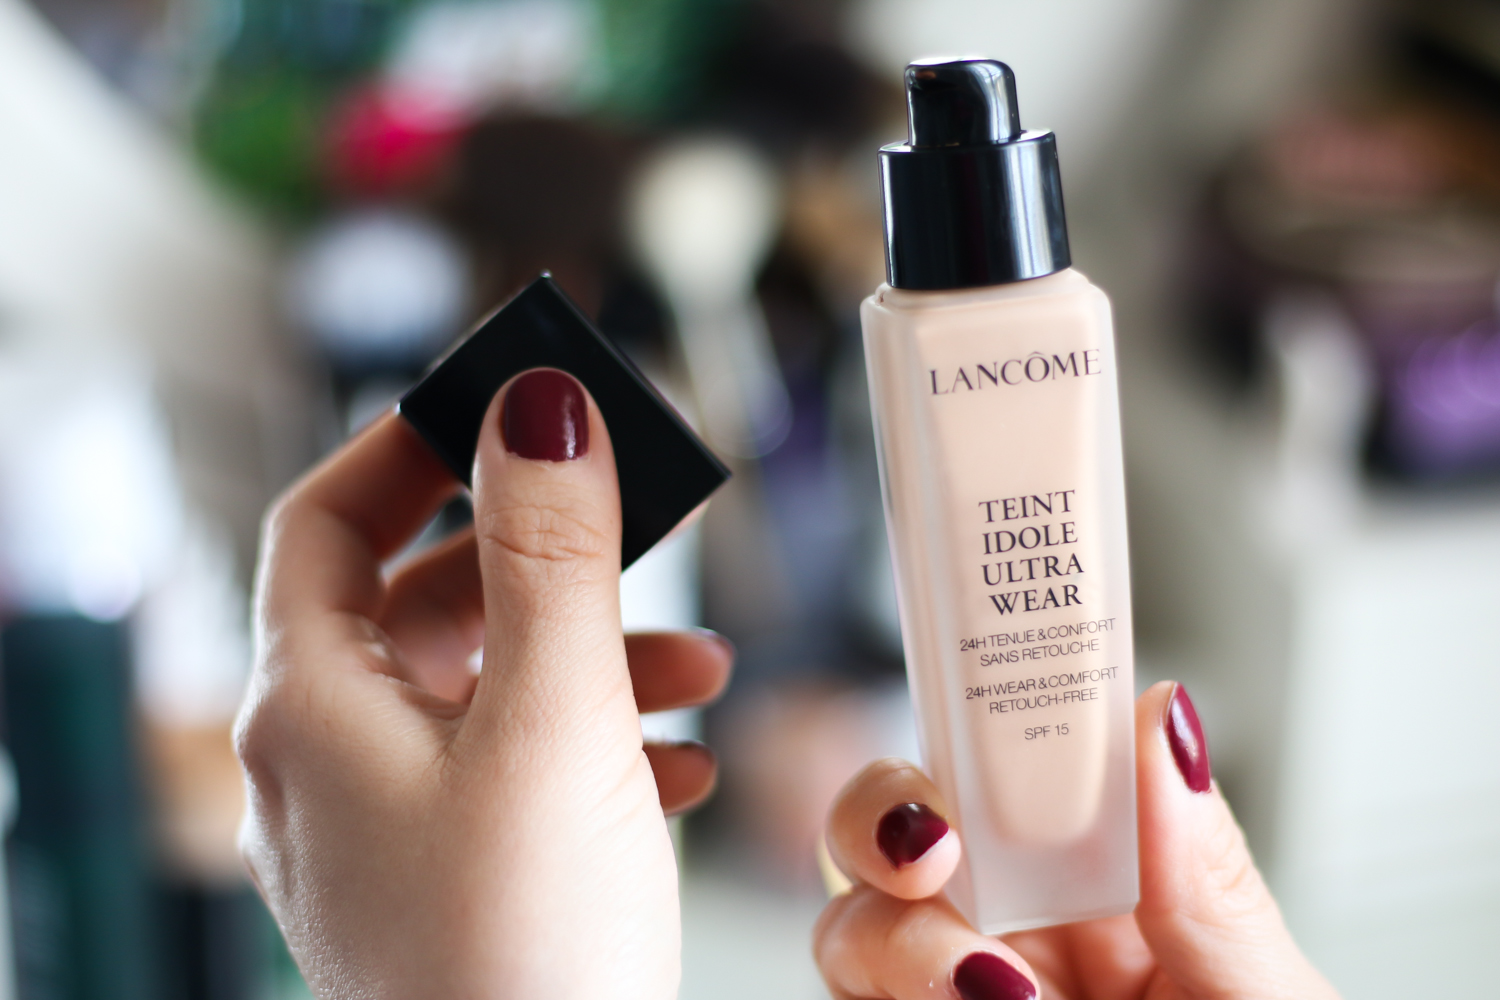 Lancome-Teint-Idole-Ultra-24H-Review-and-Swatches-023-and-03.jpg